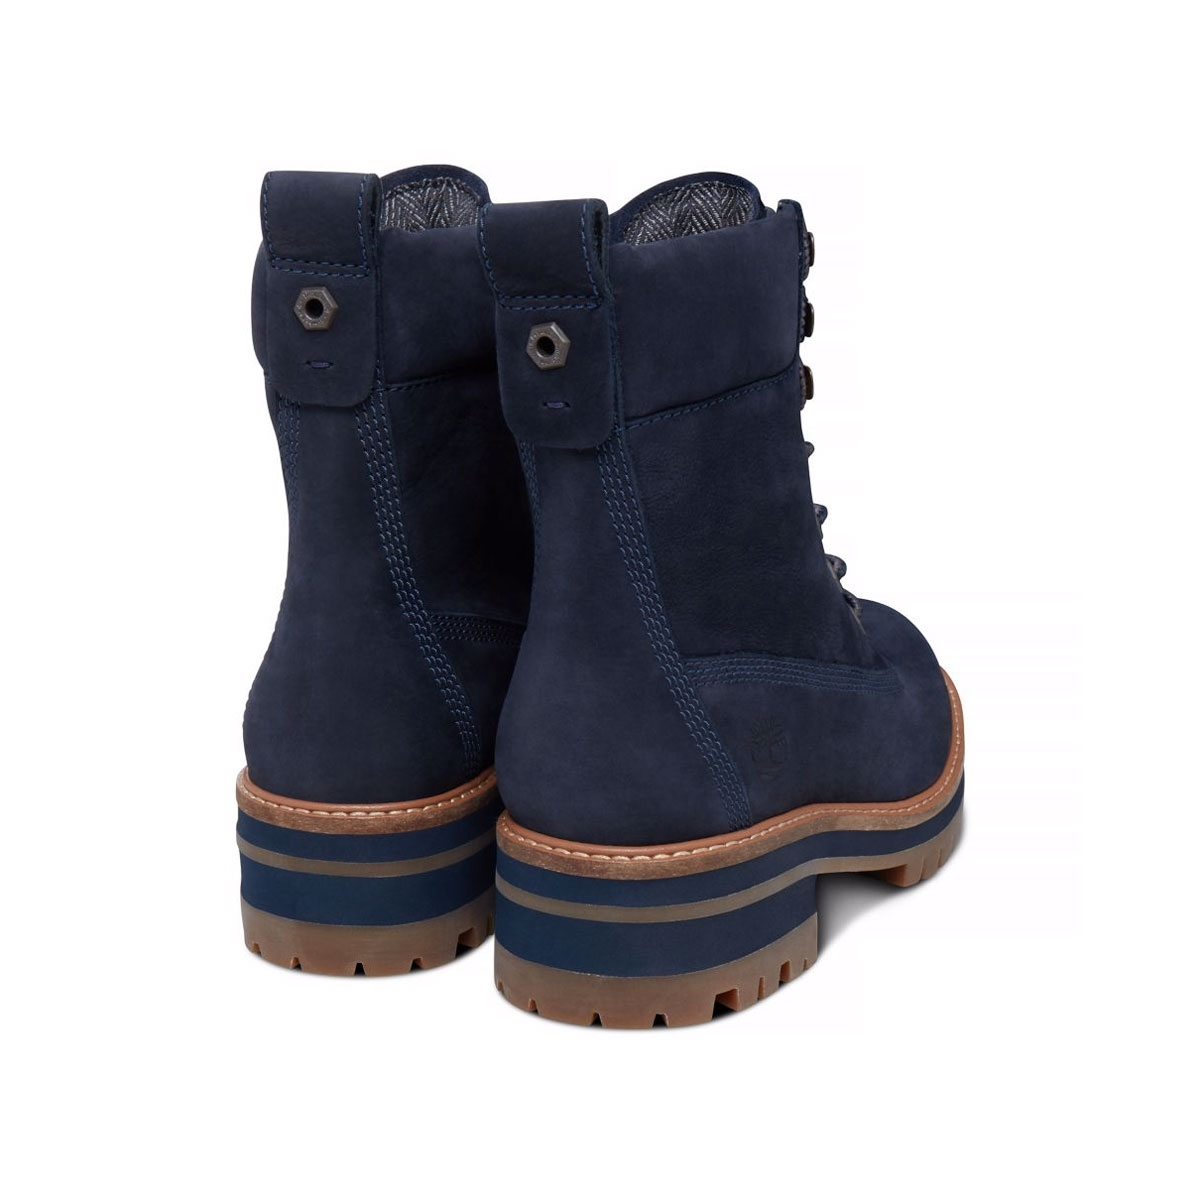 Unique Timberland Womens Teddy Fleece WP Fold-Down Boots Navy Blue 8312A | EBay